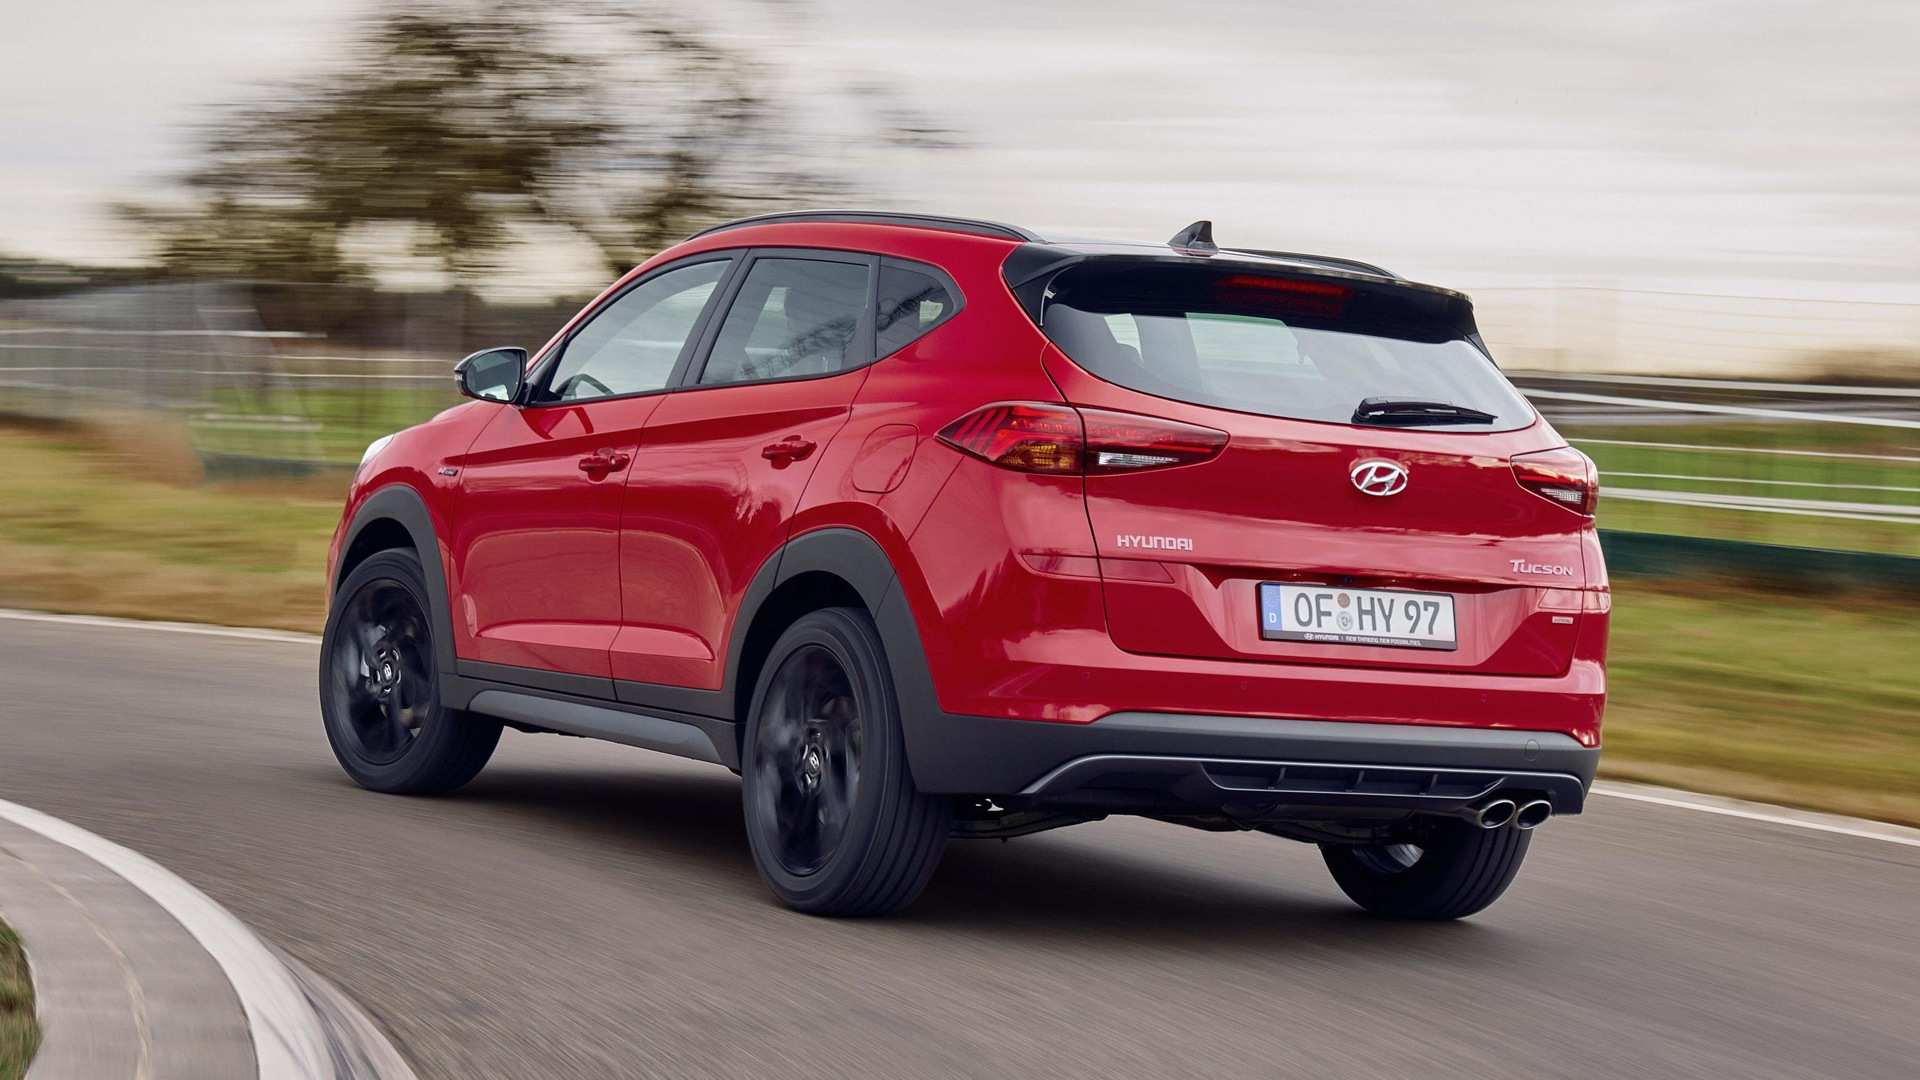 46 Gallery of Hyundai Tucson N Line 2020 New Review by Hyundai Tucson N Line 2020